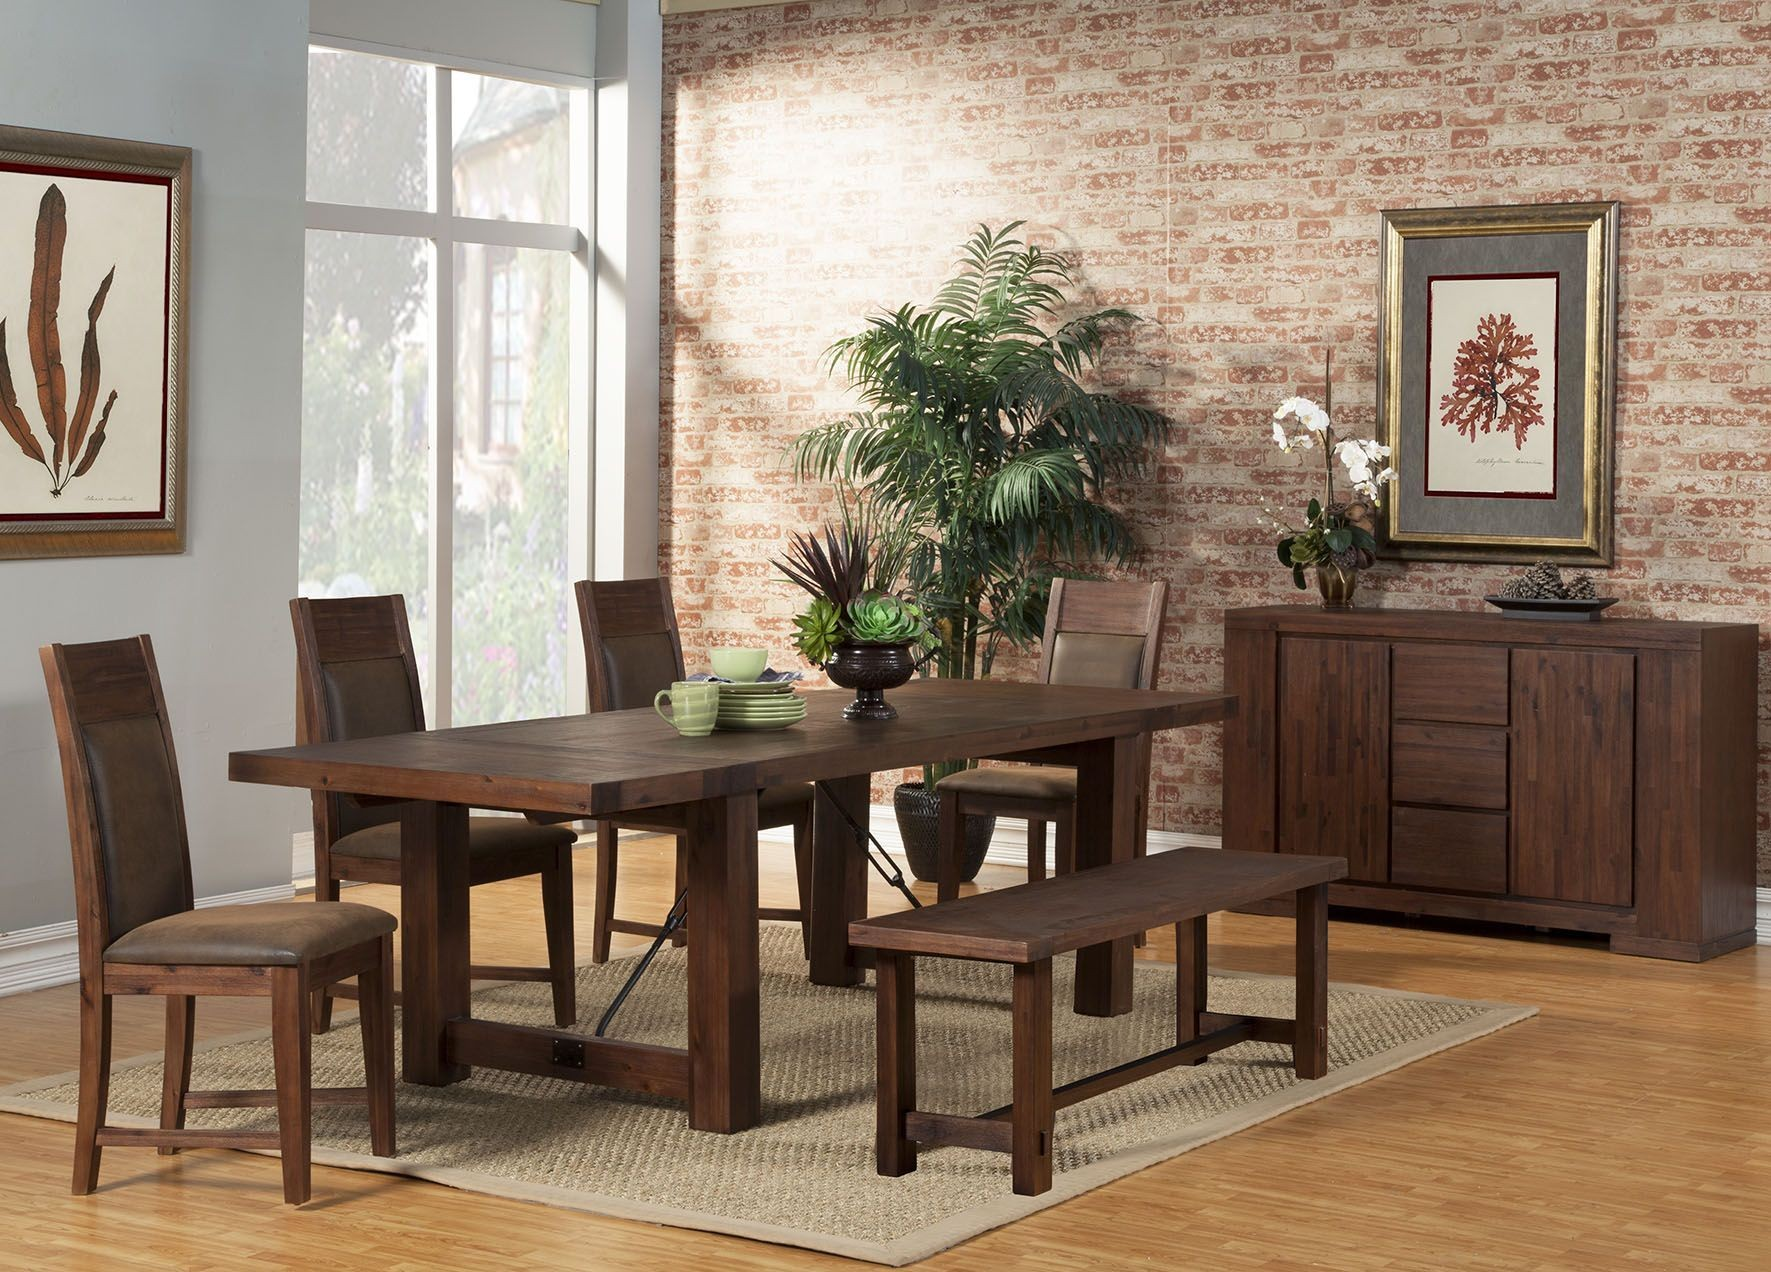 pierre cappuccino dining room set from alpine coleman middleton cappuccino extendable rectangular dining room